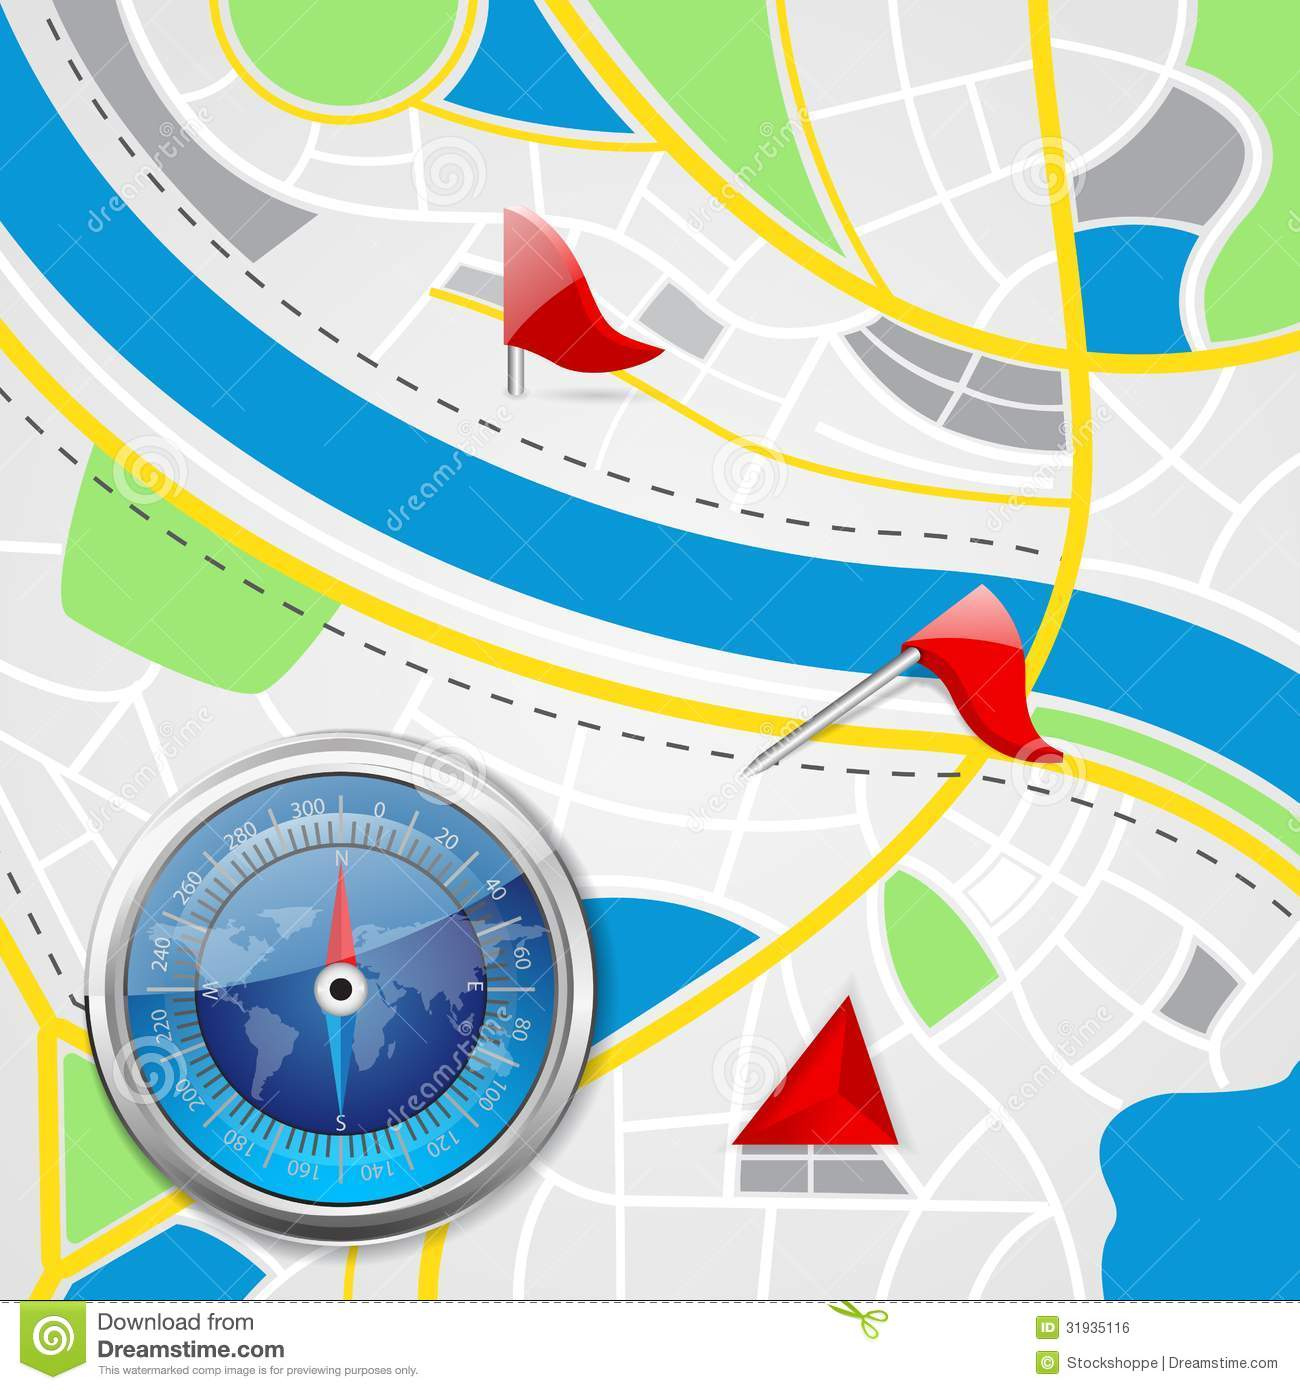 Road map clipart free transparent library Compass On Road Map Royalty Free Stock Image - Image: 31935116 transparent library